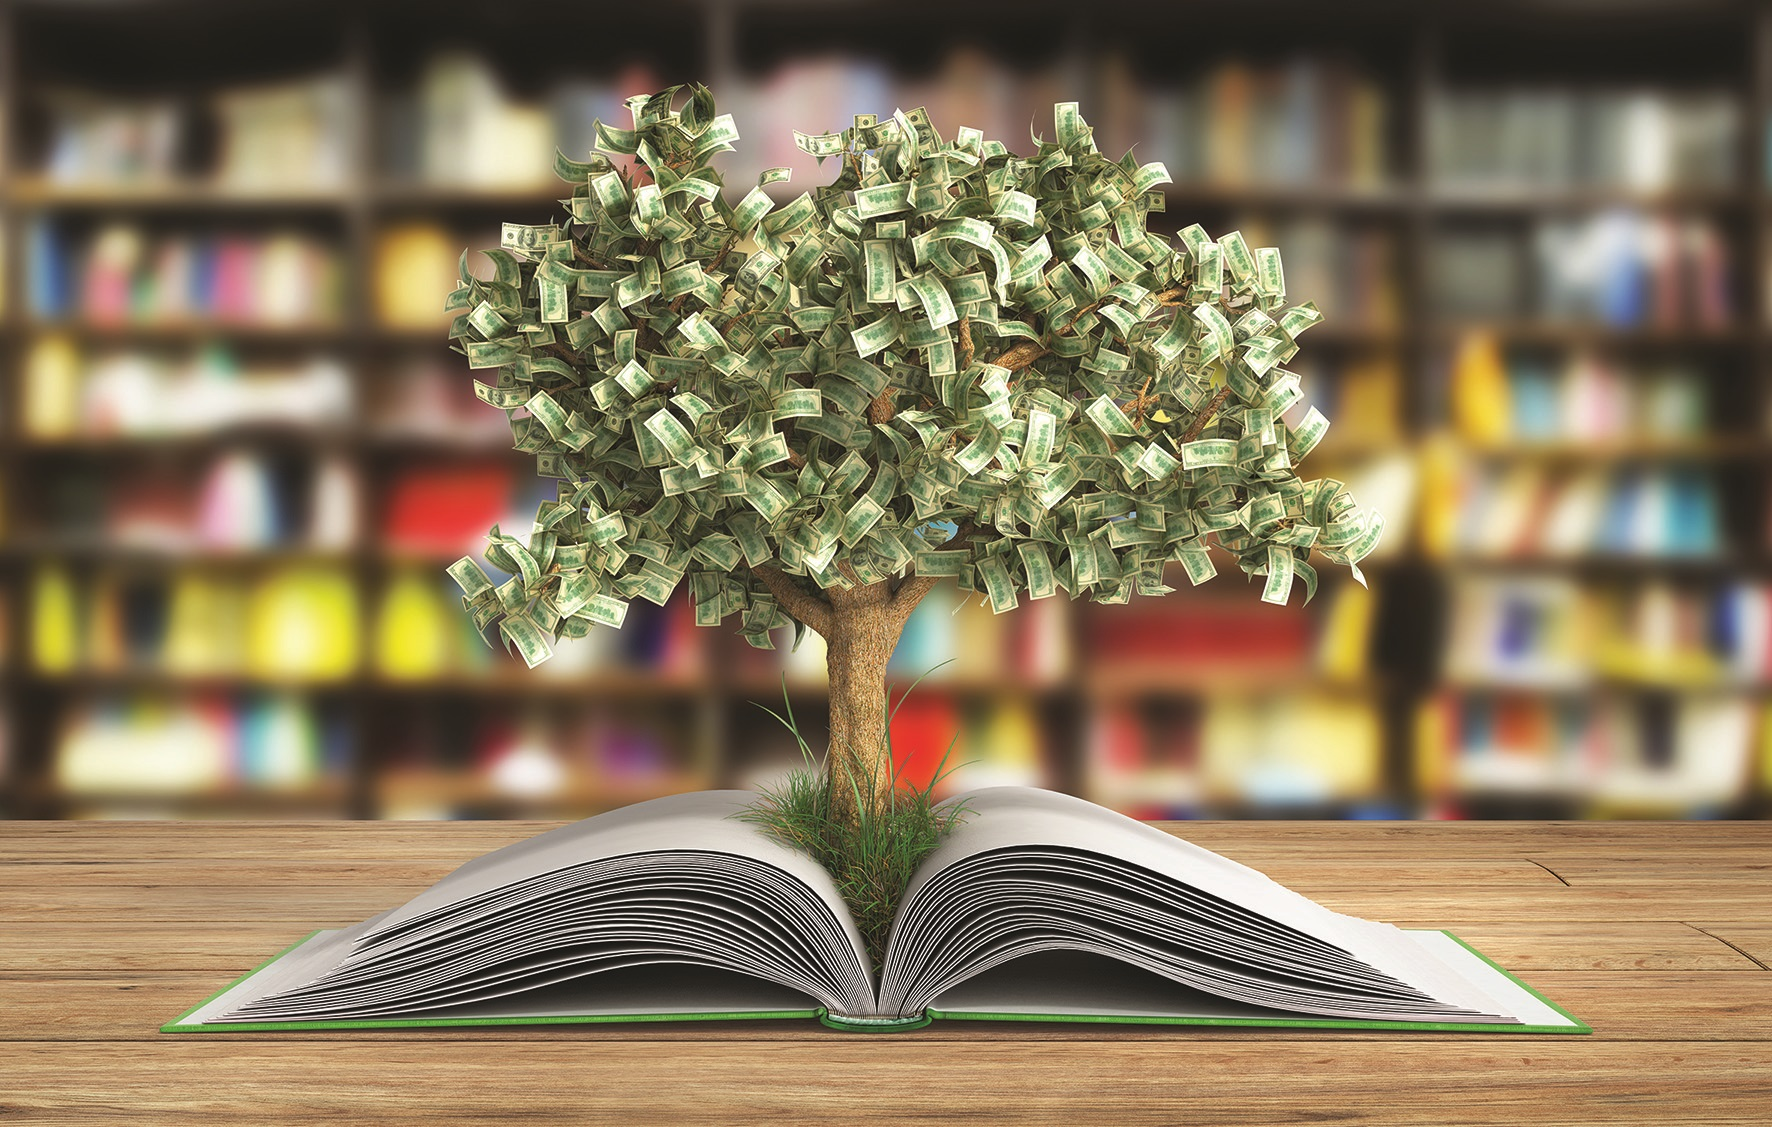 WEB_PHOTO_MONEY_TREE_BOOK_06092017